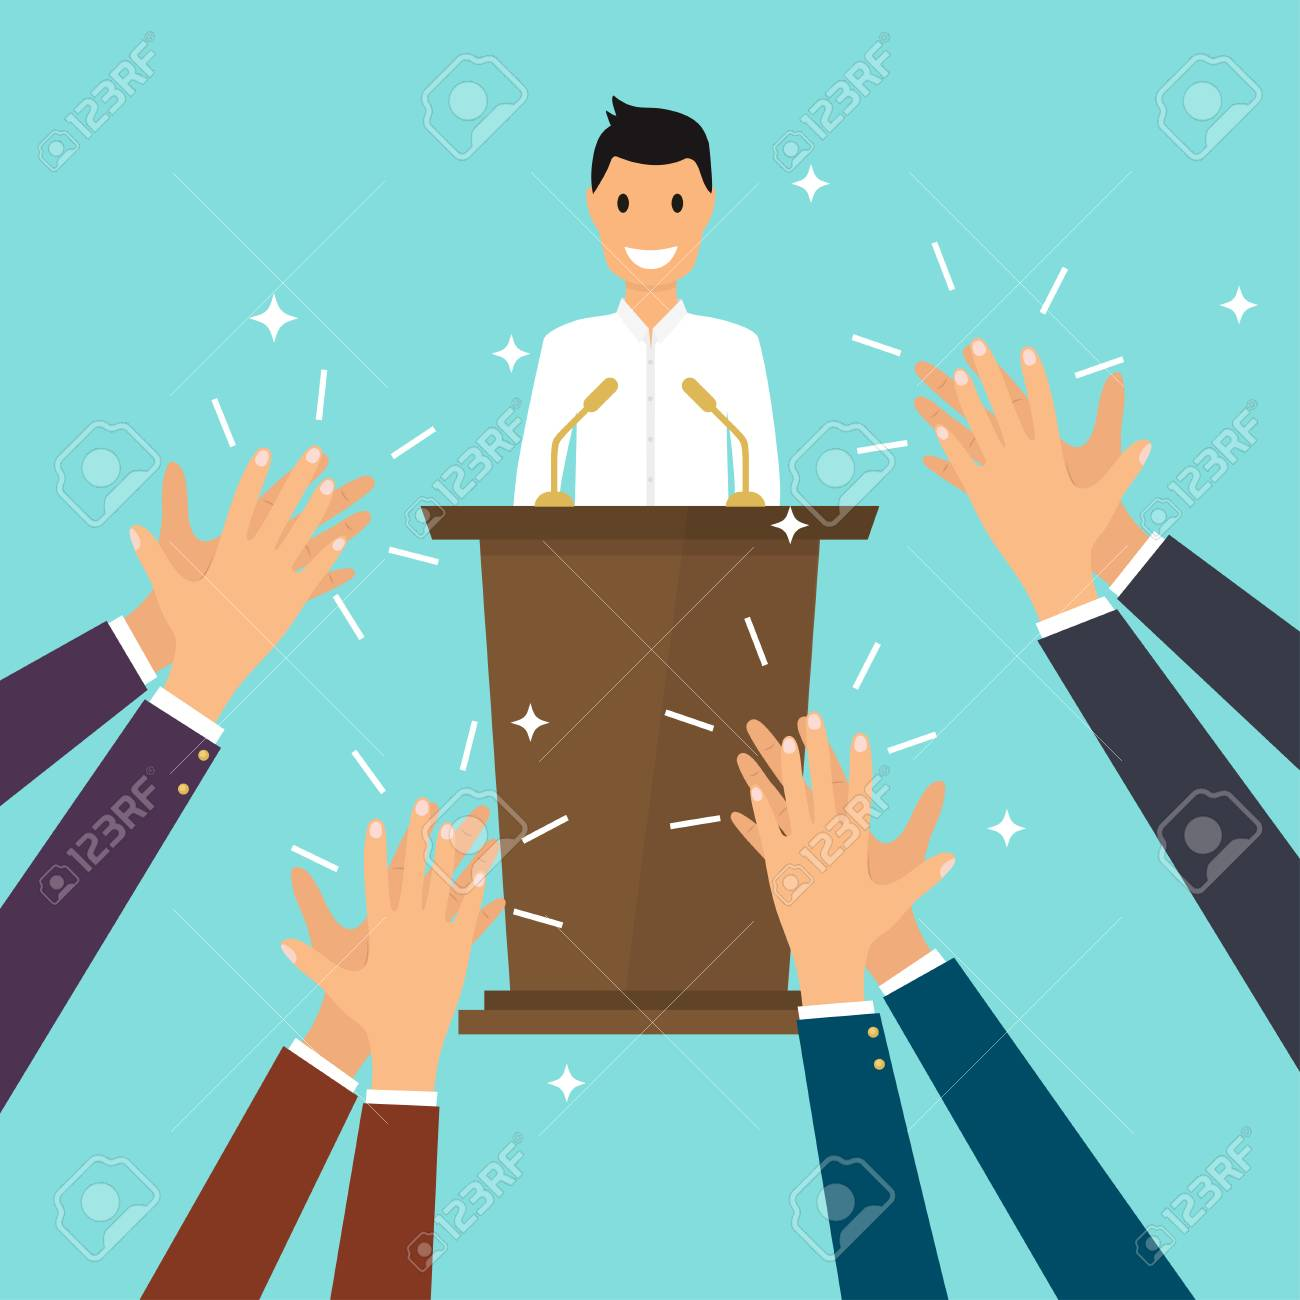 Success in business. Man giving a speech on stage. Human hands clapping. Flat design modern vector illustration concept. - 85649262